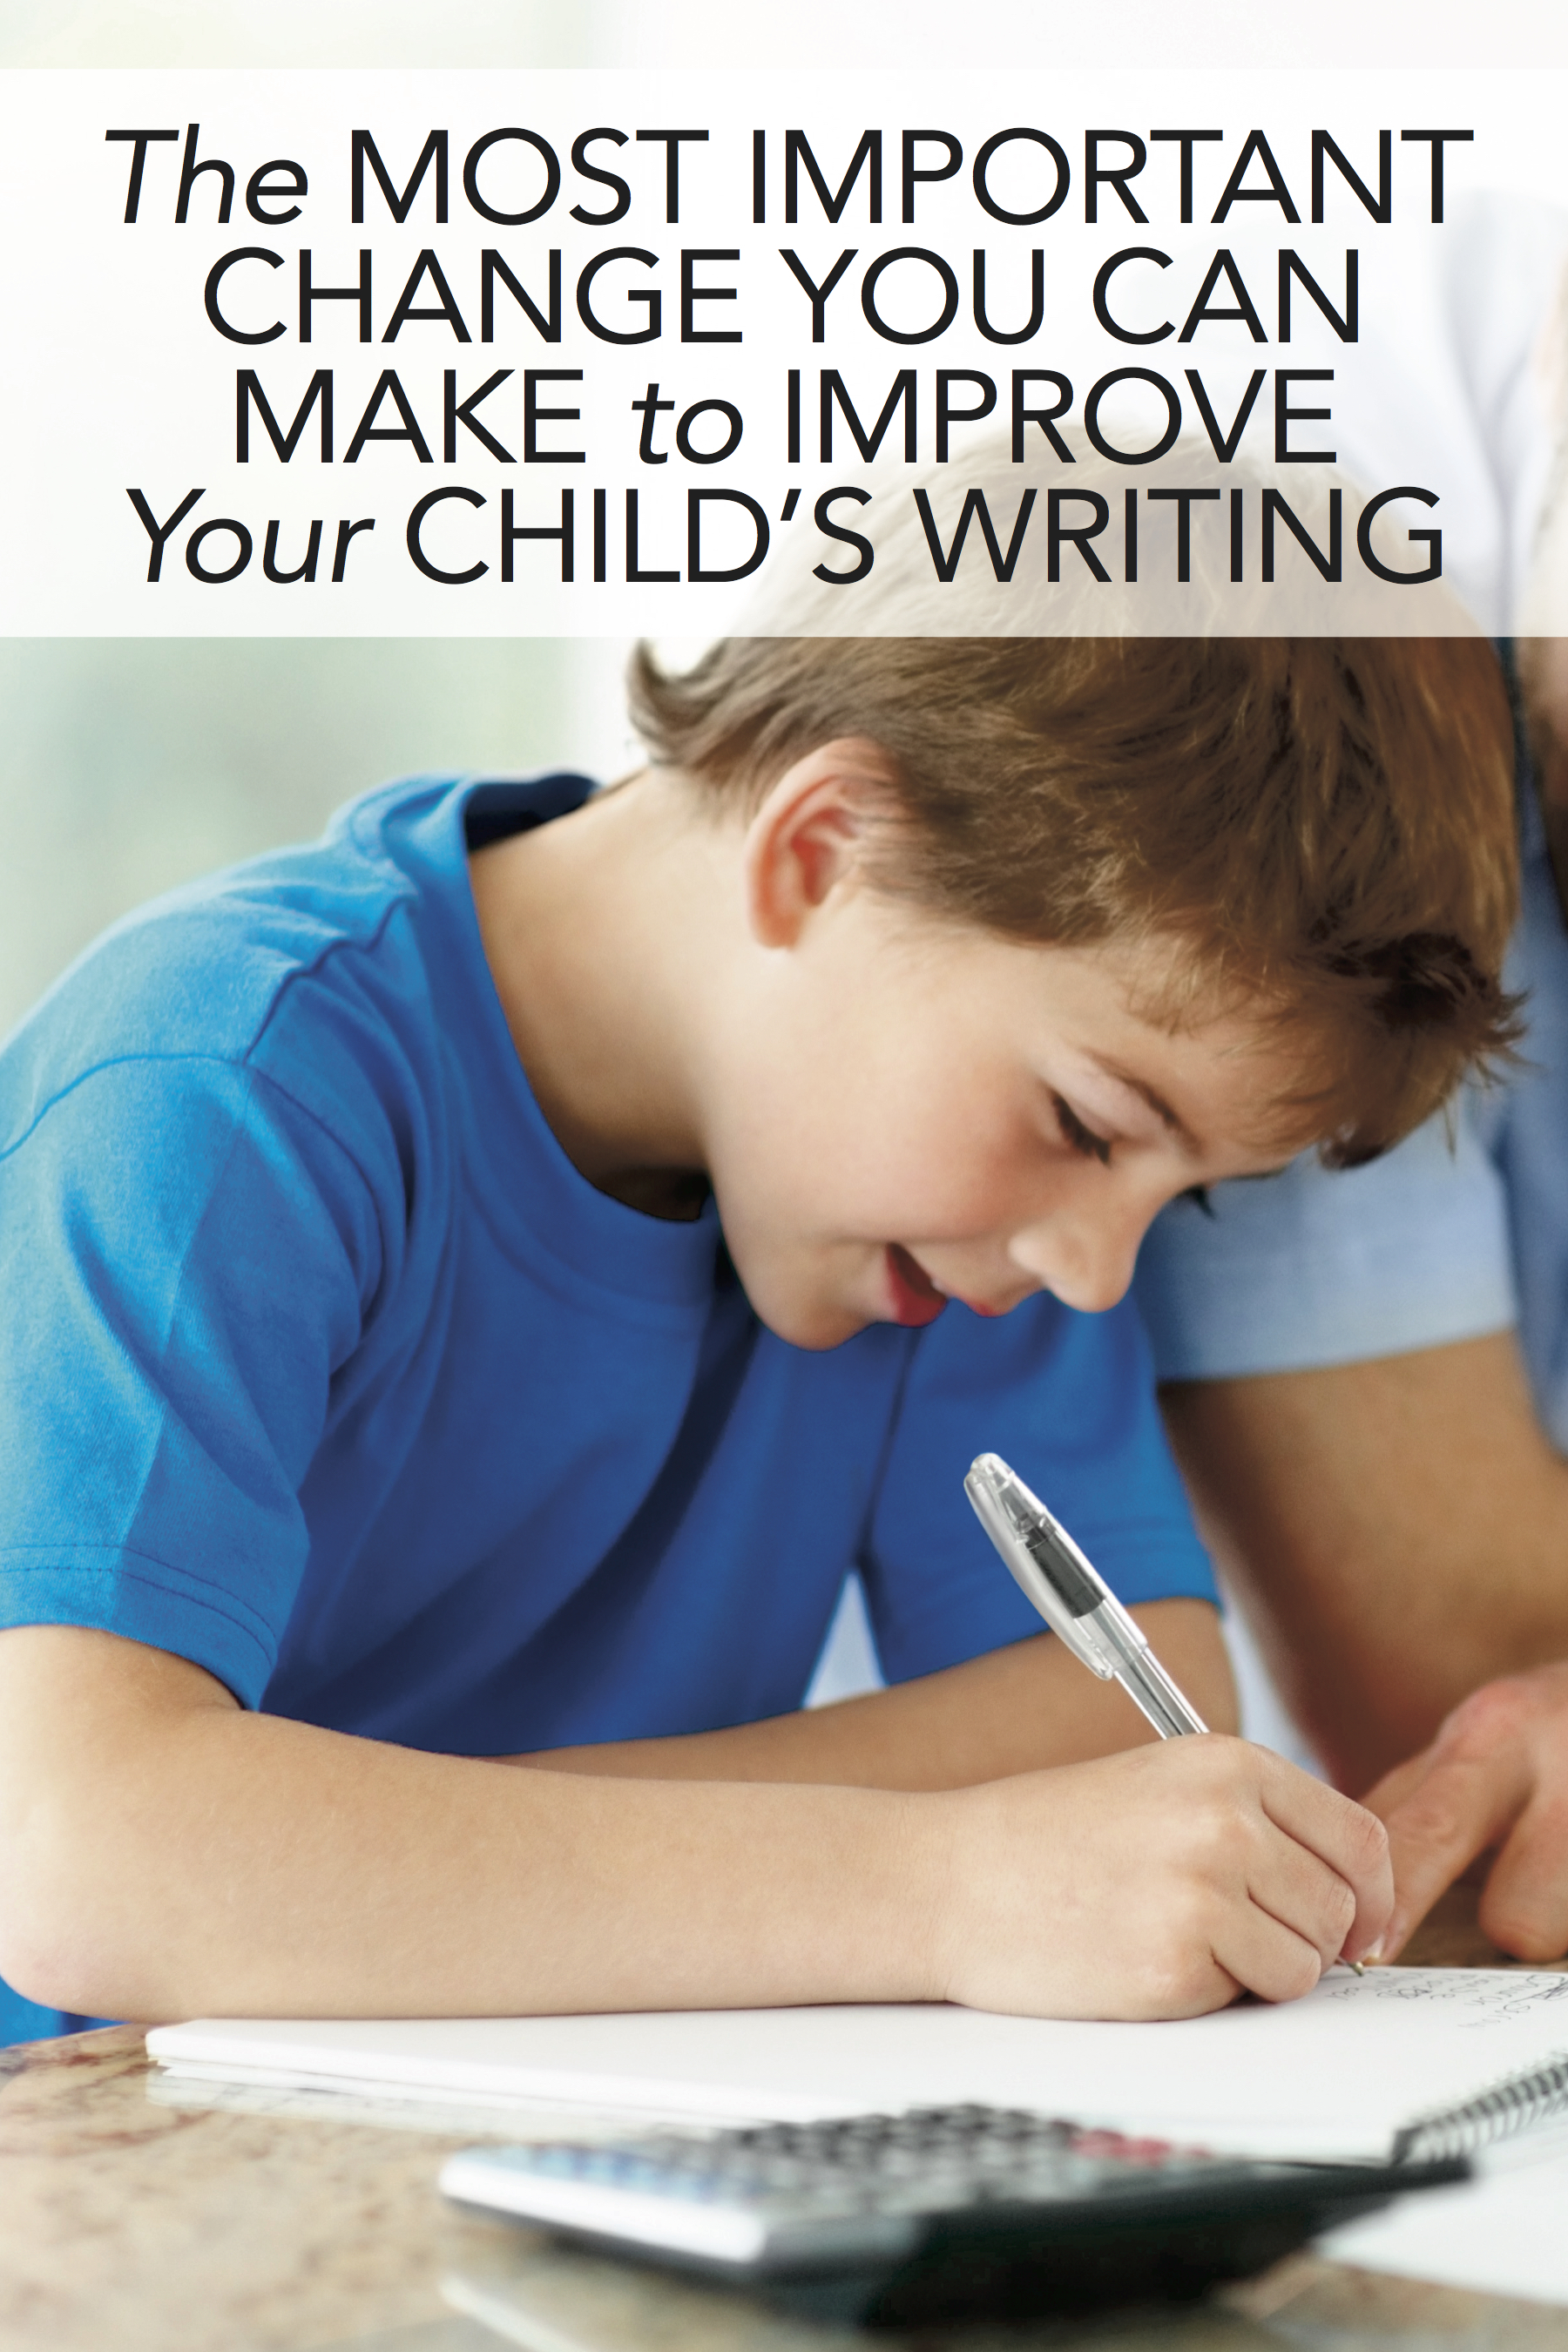 The Most Important Change You Can Make to Improve Your Child's Writing